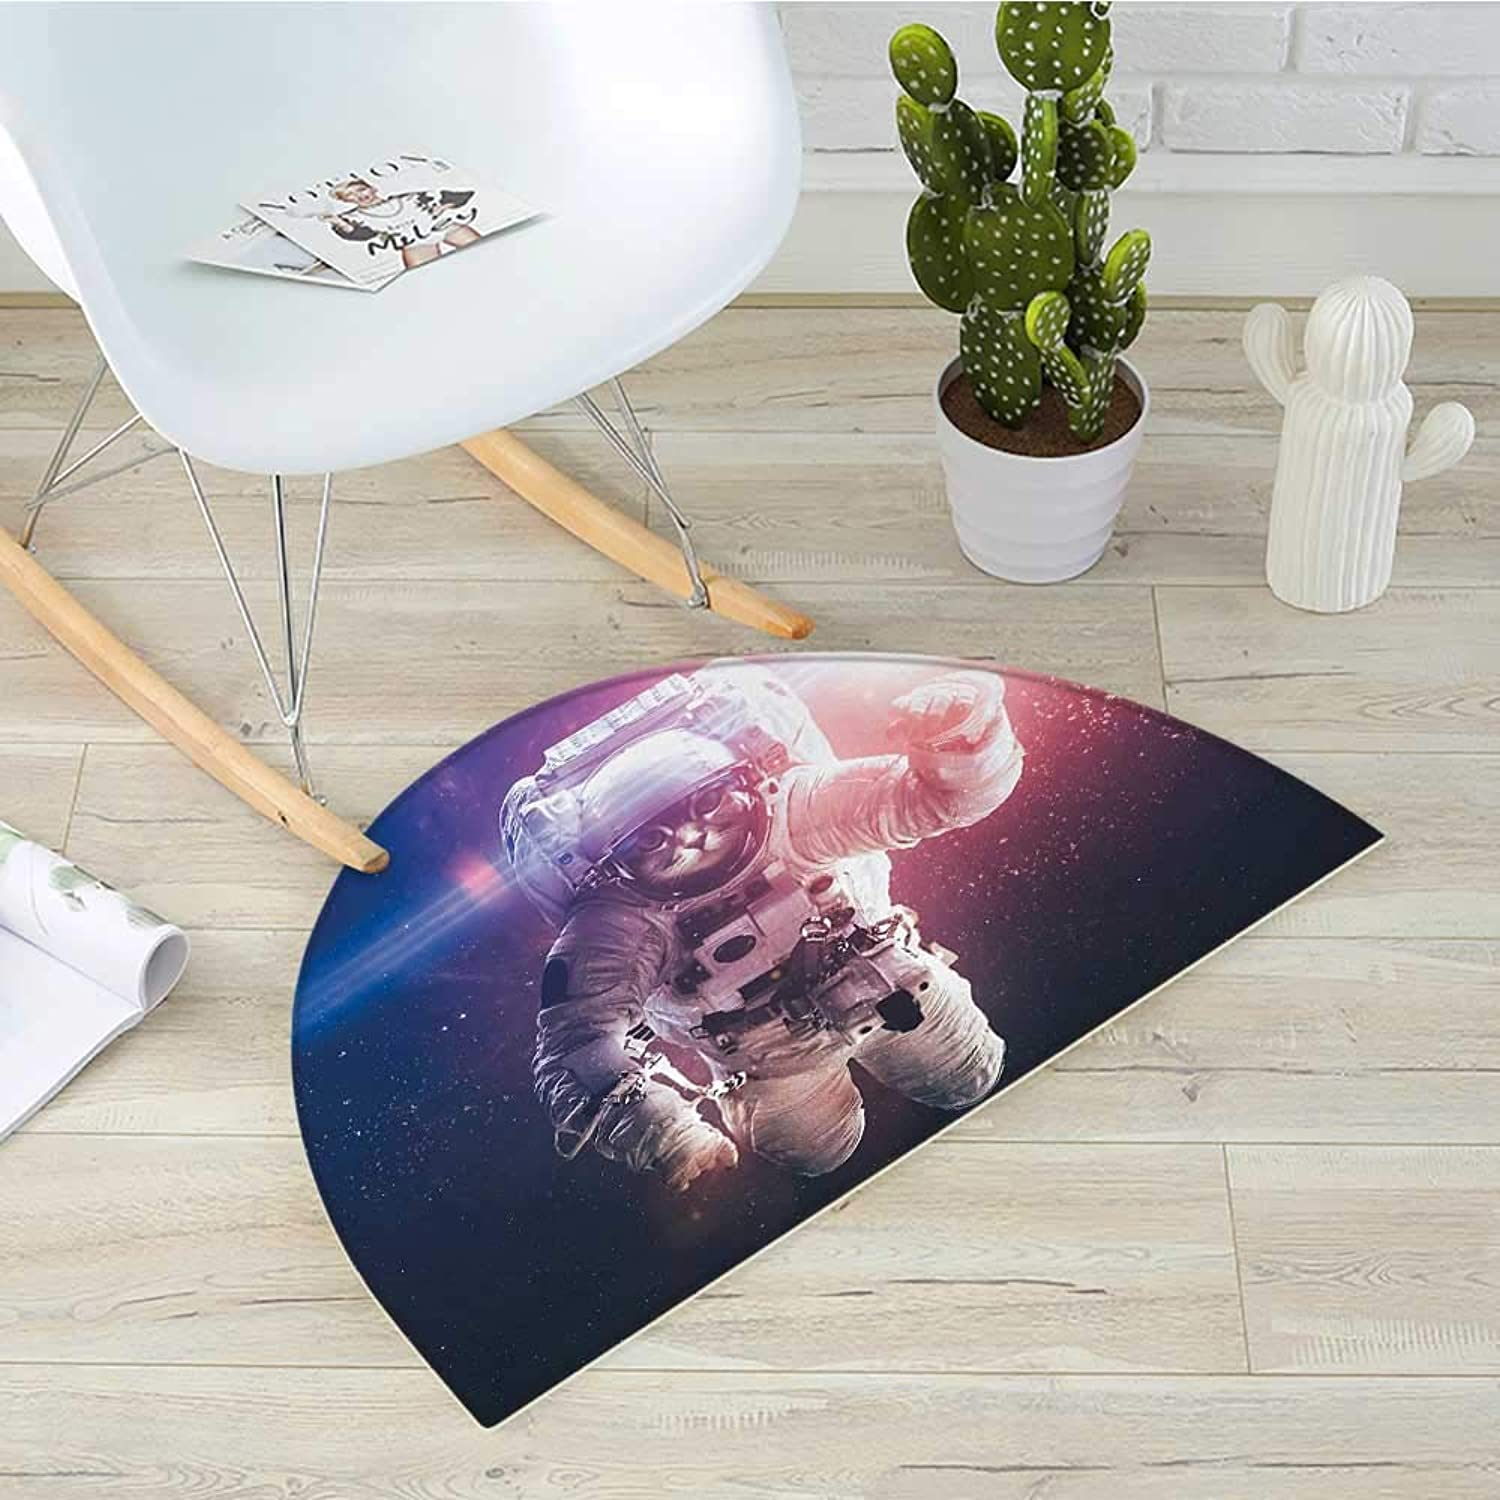 Space Cat Semicircular CushionFlying Cat Without Gravity with Clusters Planet Eclipse Image Entry Door Mat H 31.5  xD 47.2  White Purple and Dark bluee